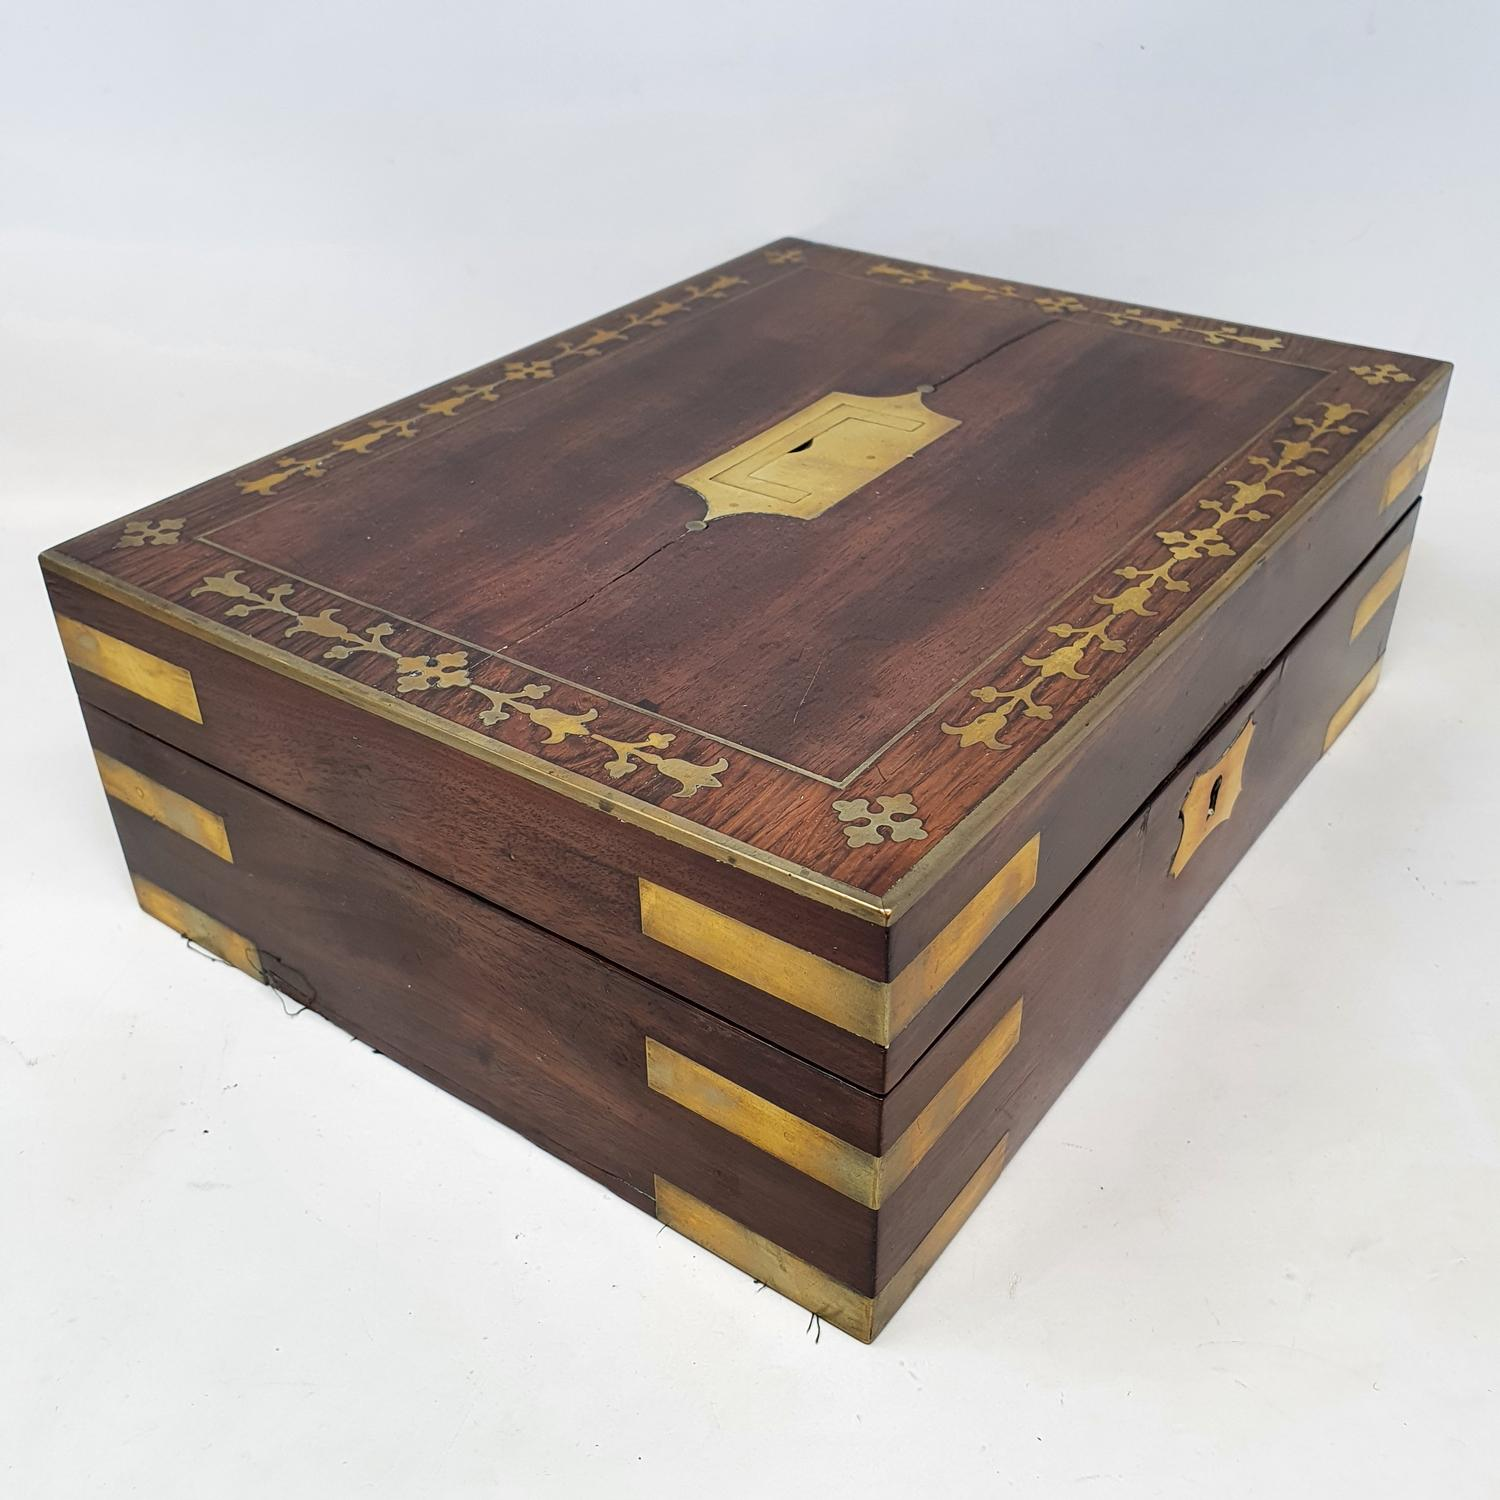 A 19th century mahogany and brass bound jewellery box, with a fitted interior, 30 cm wide - Image 4 of 5